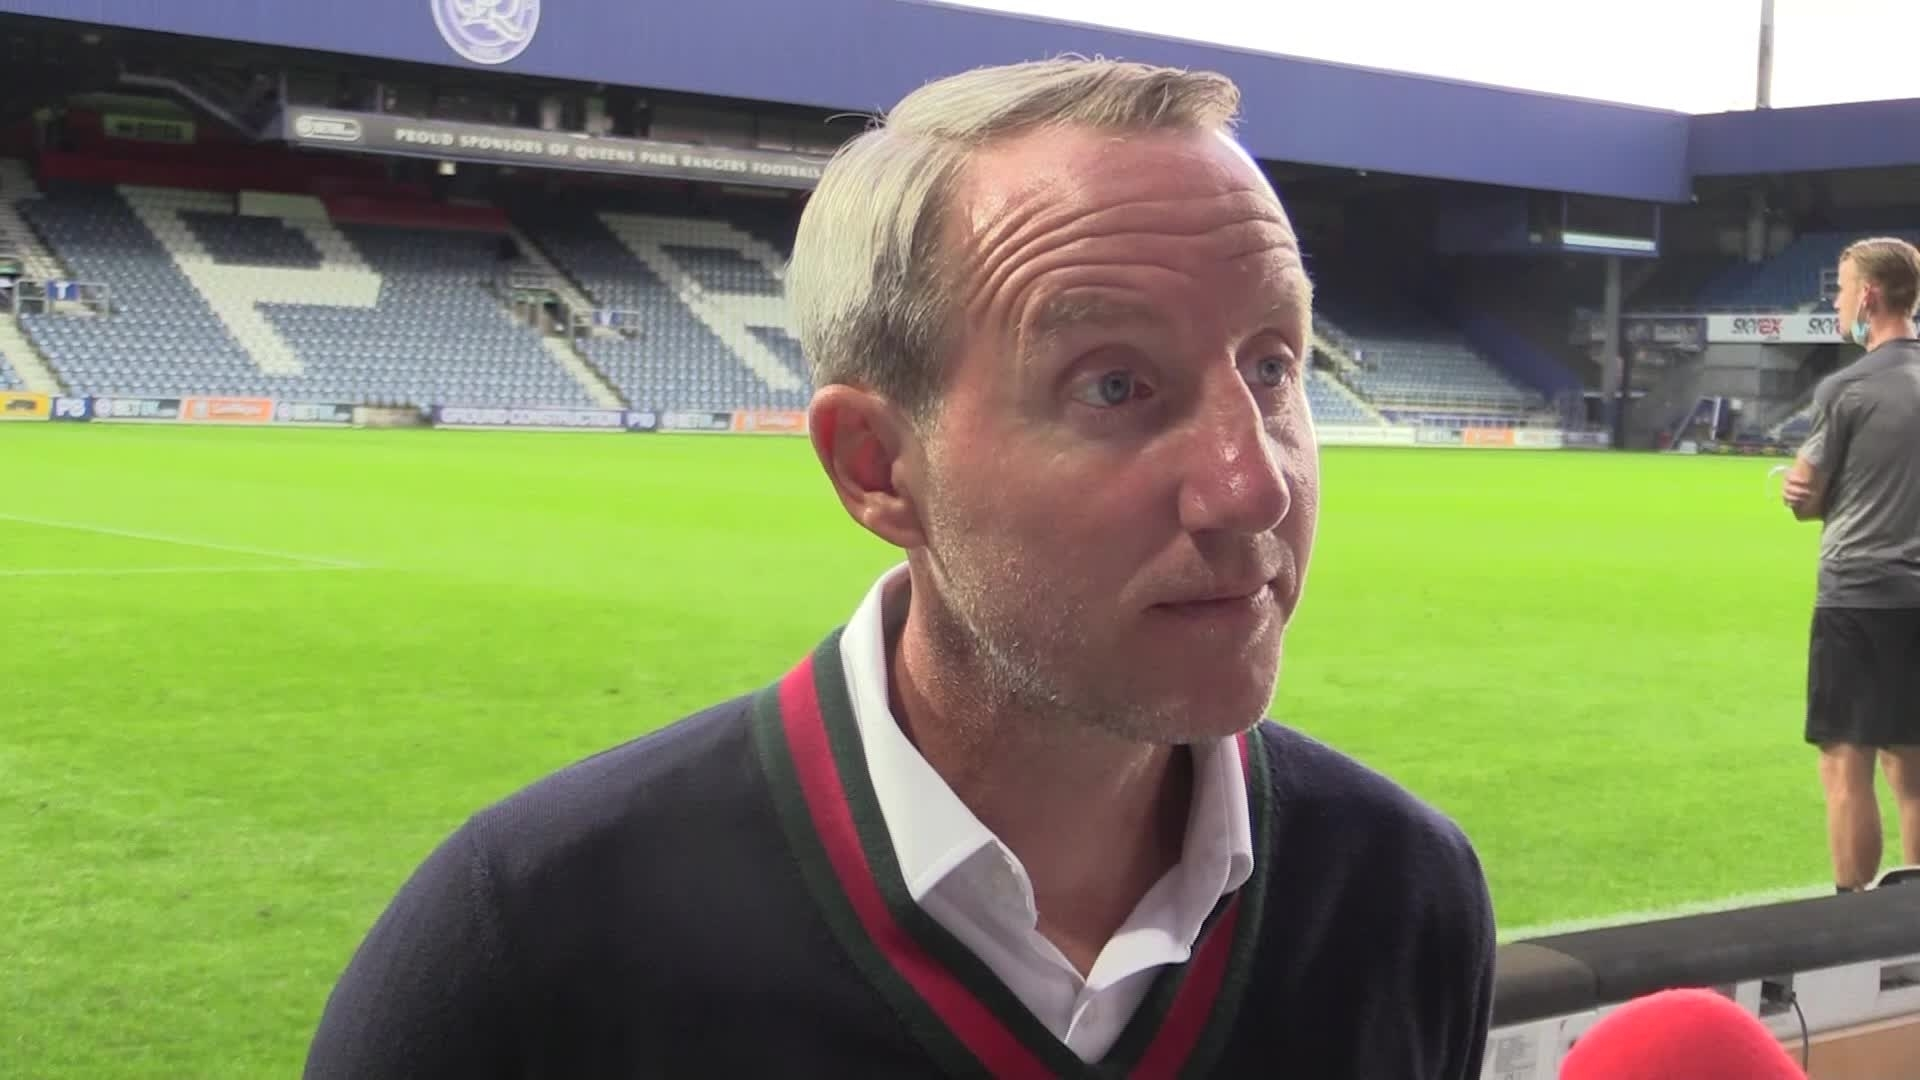 Lee Bowyer post-AFC Wimbledon press conference (September 2020)